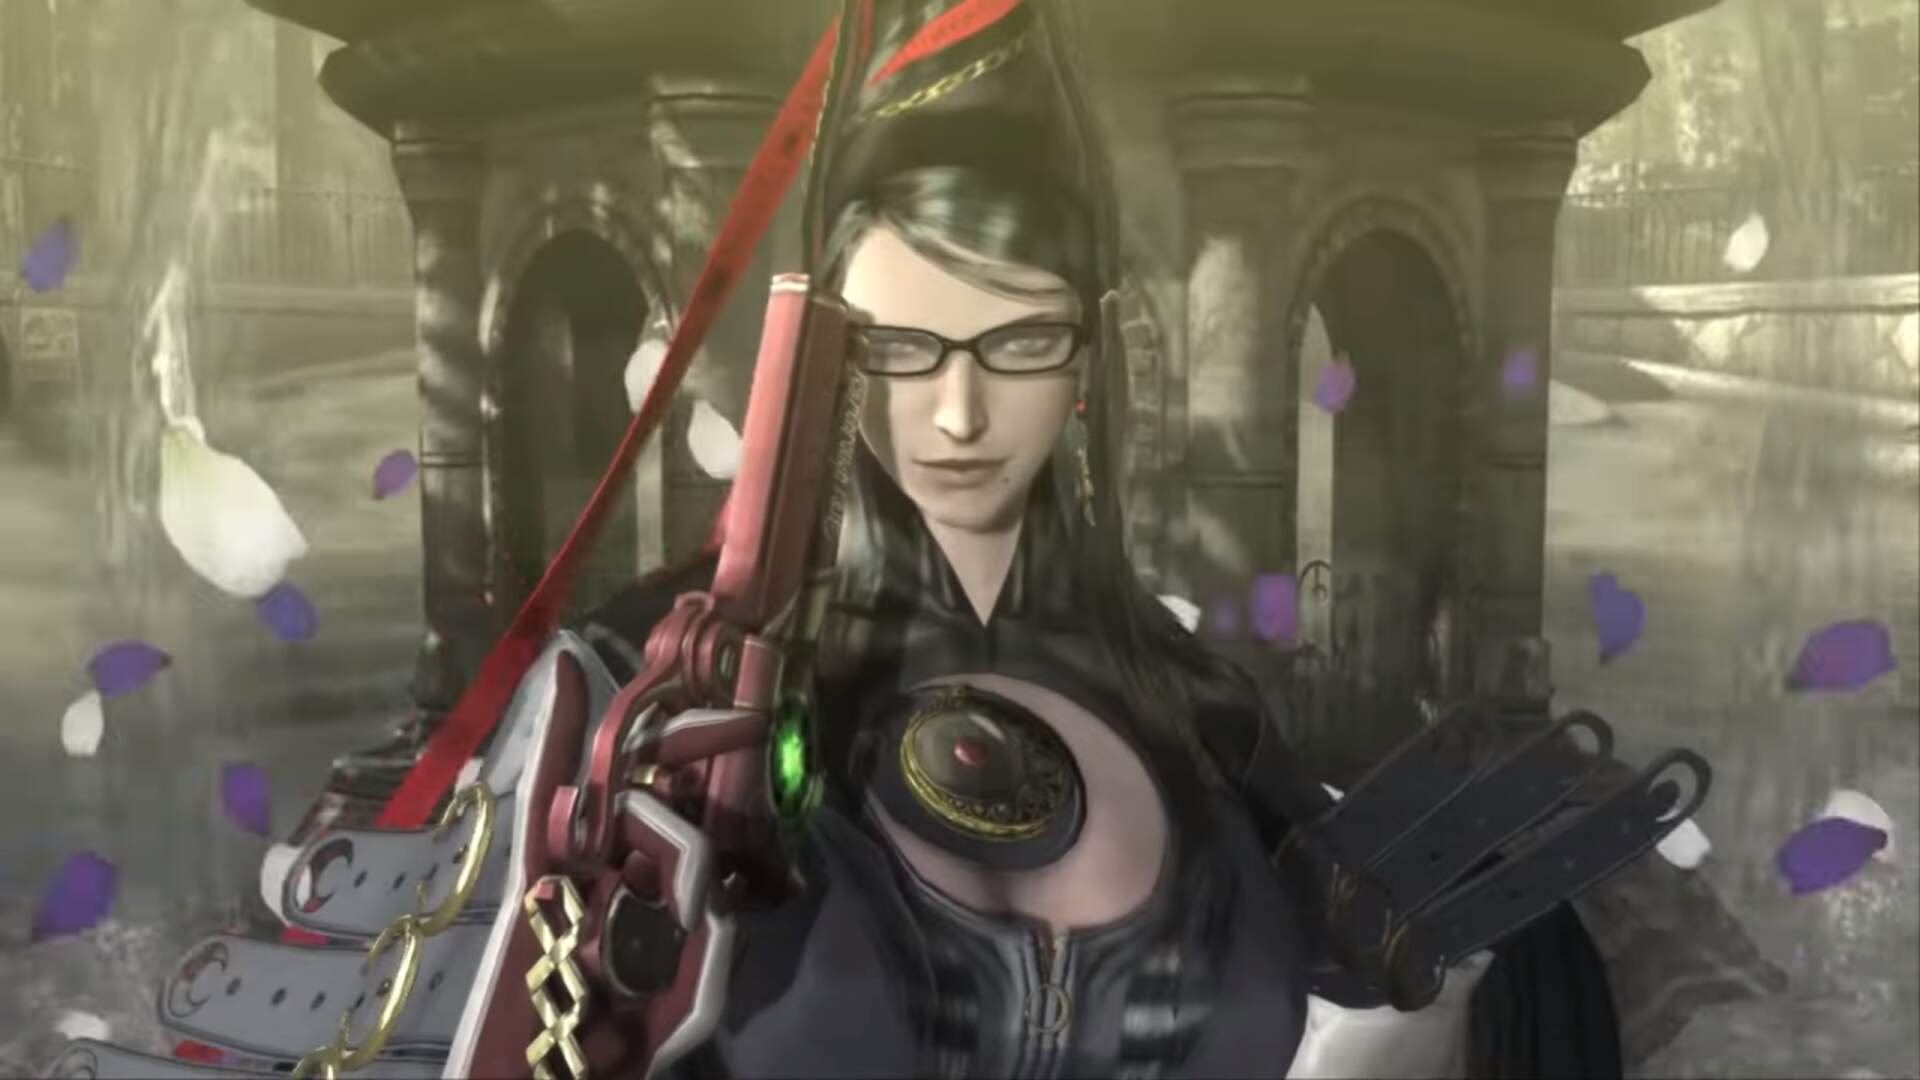 You Can Own Vanquish and Bayonetta Together in One Handsome Steelbook Next Year